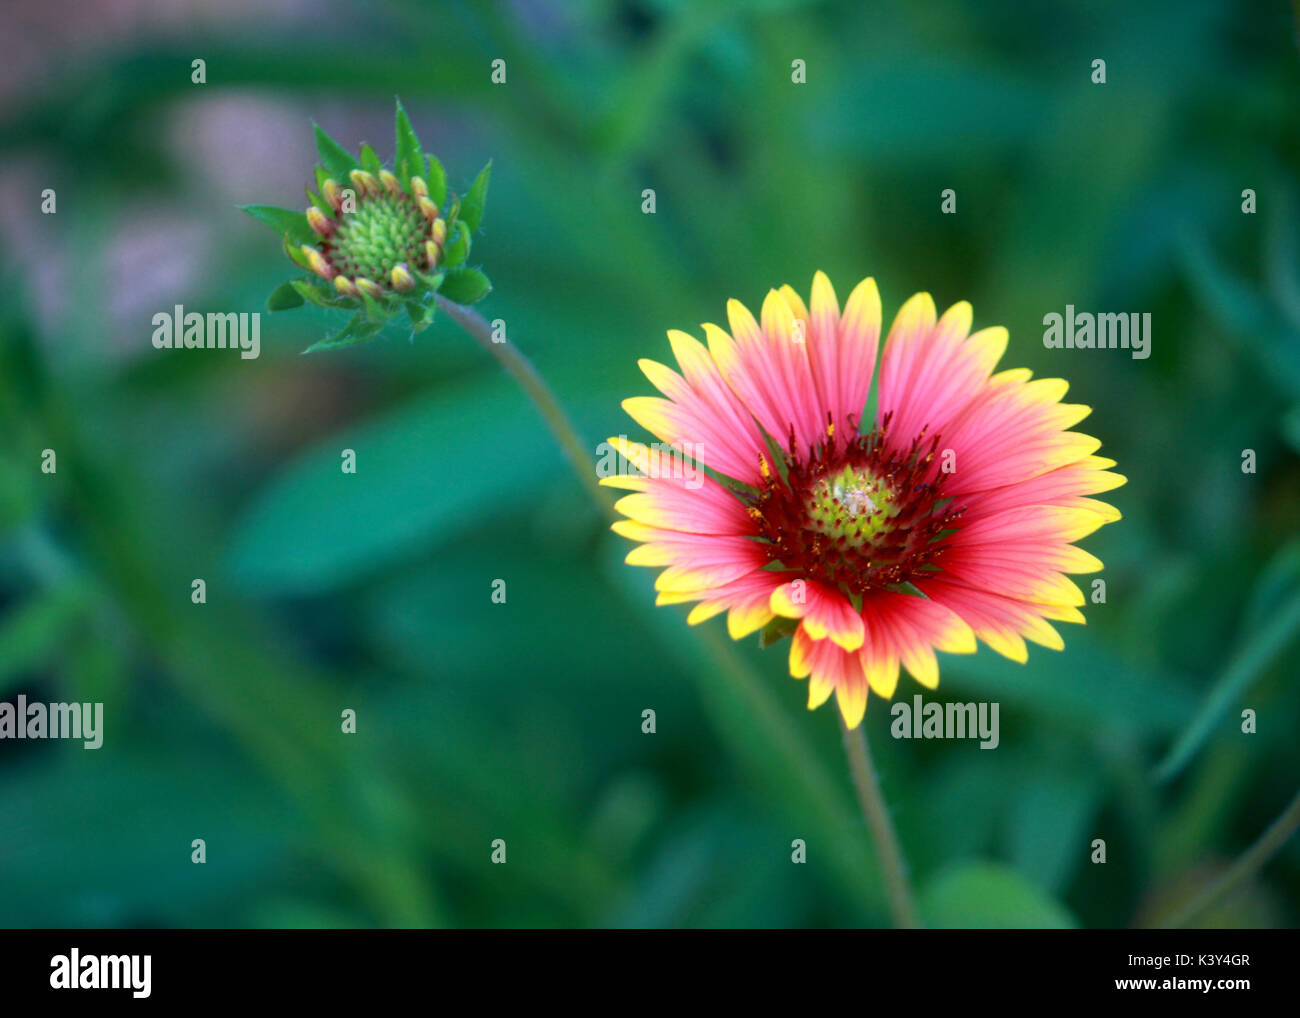 A single Gaillardia or blanket flower bloom shines in the midst of the green leaves. - Stock Image